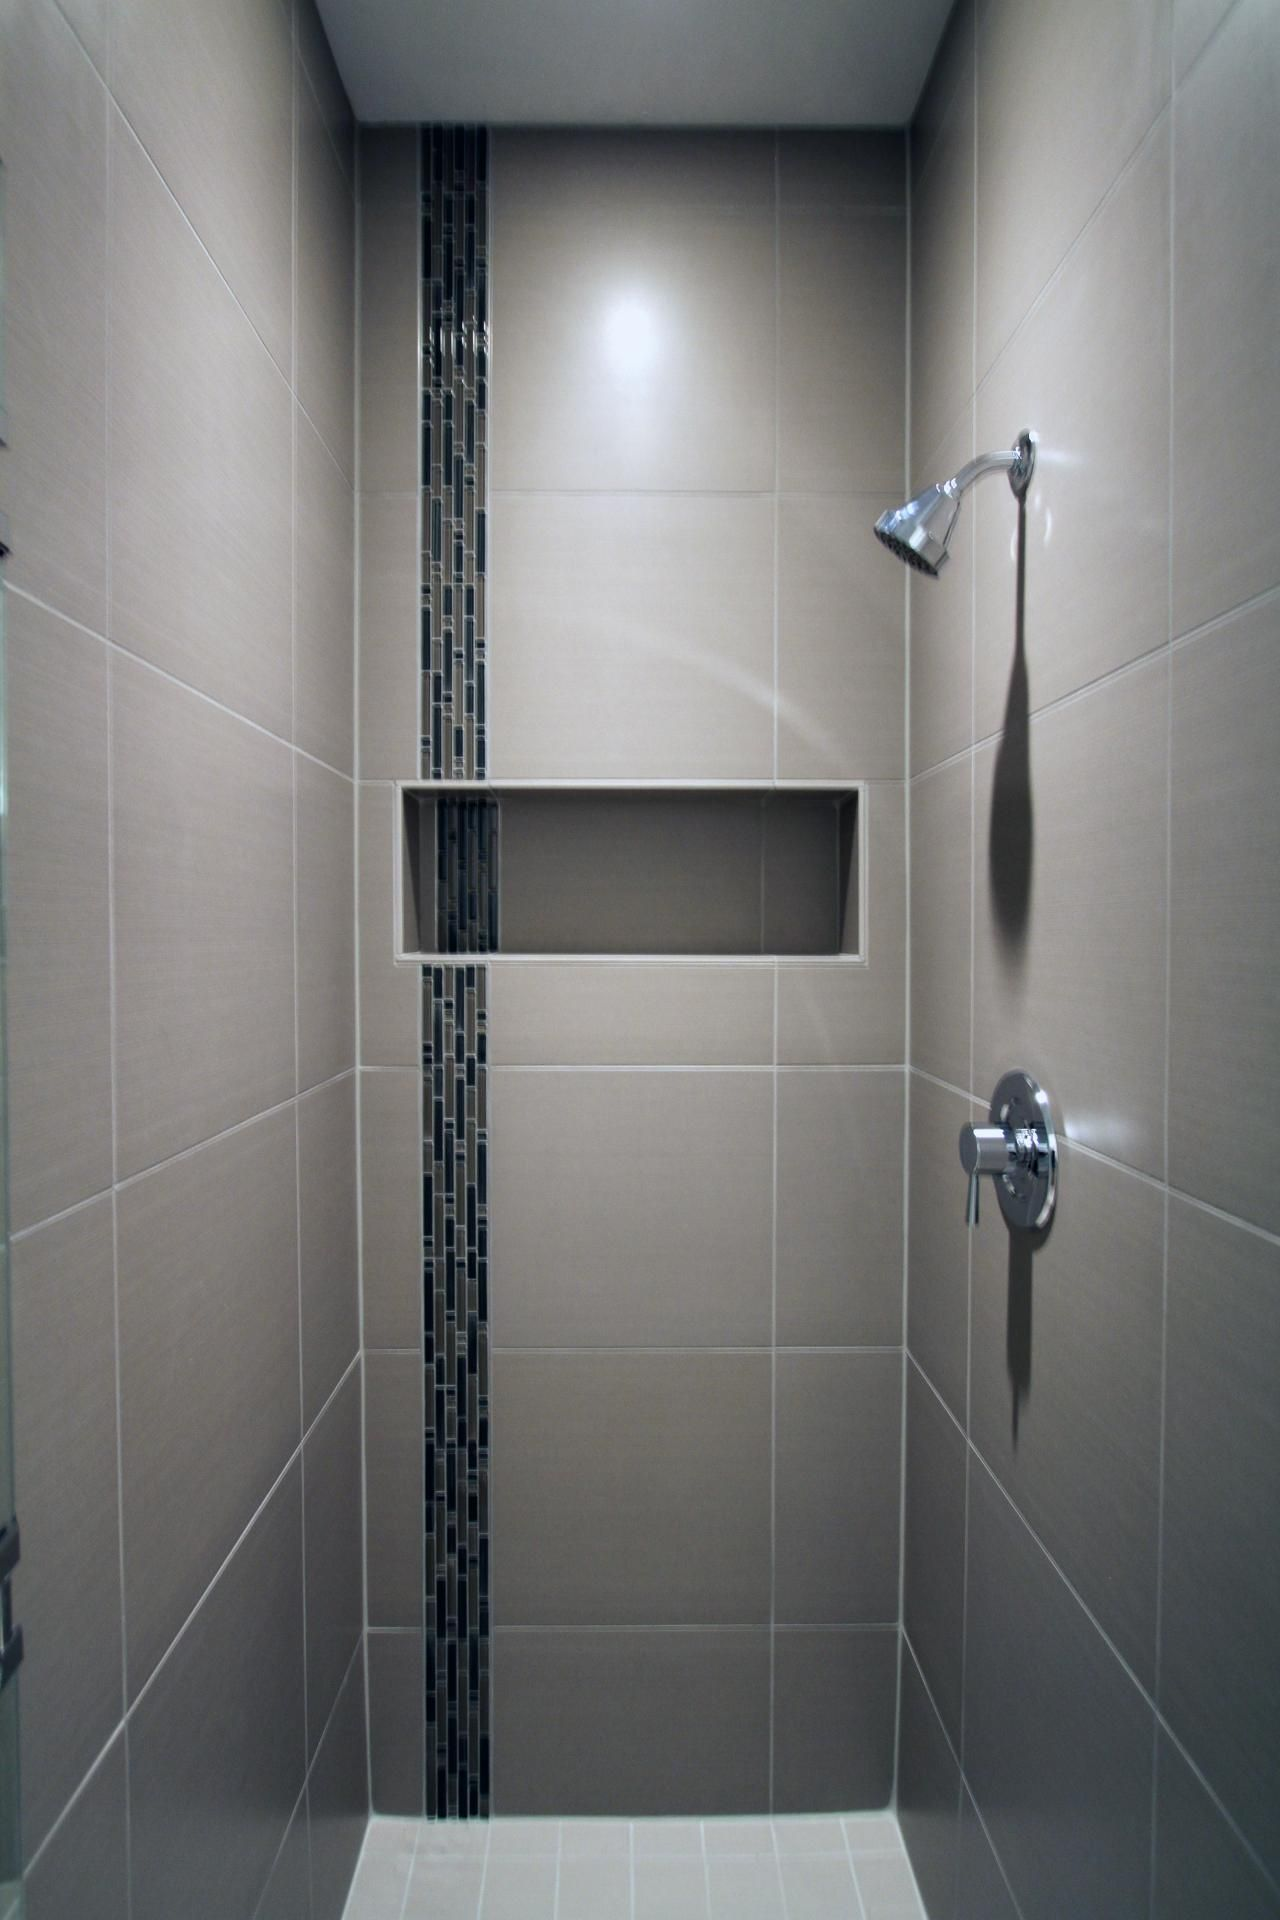 The Porcelain Tile Of This Sleek Shower Surrounds A Glass Accent Tile Stripe And Built In Niche